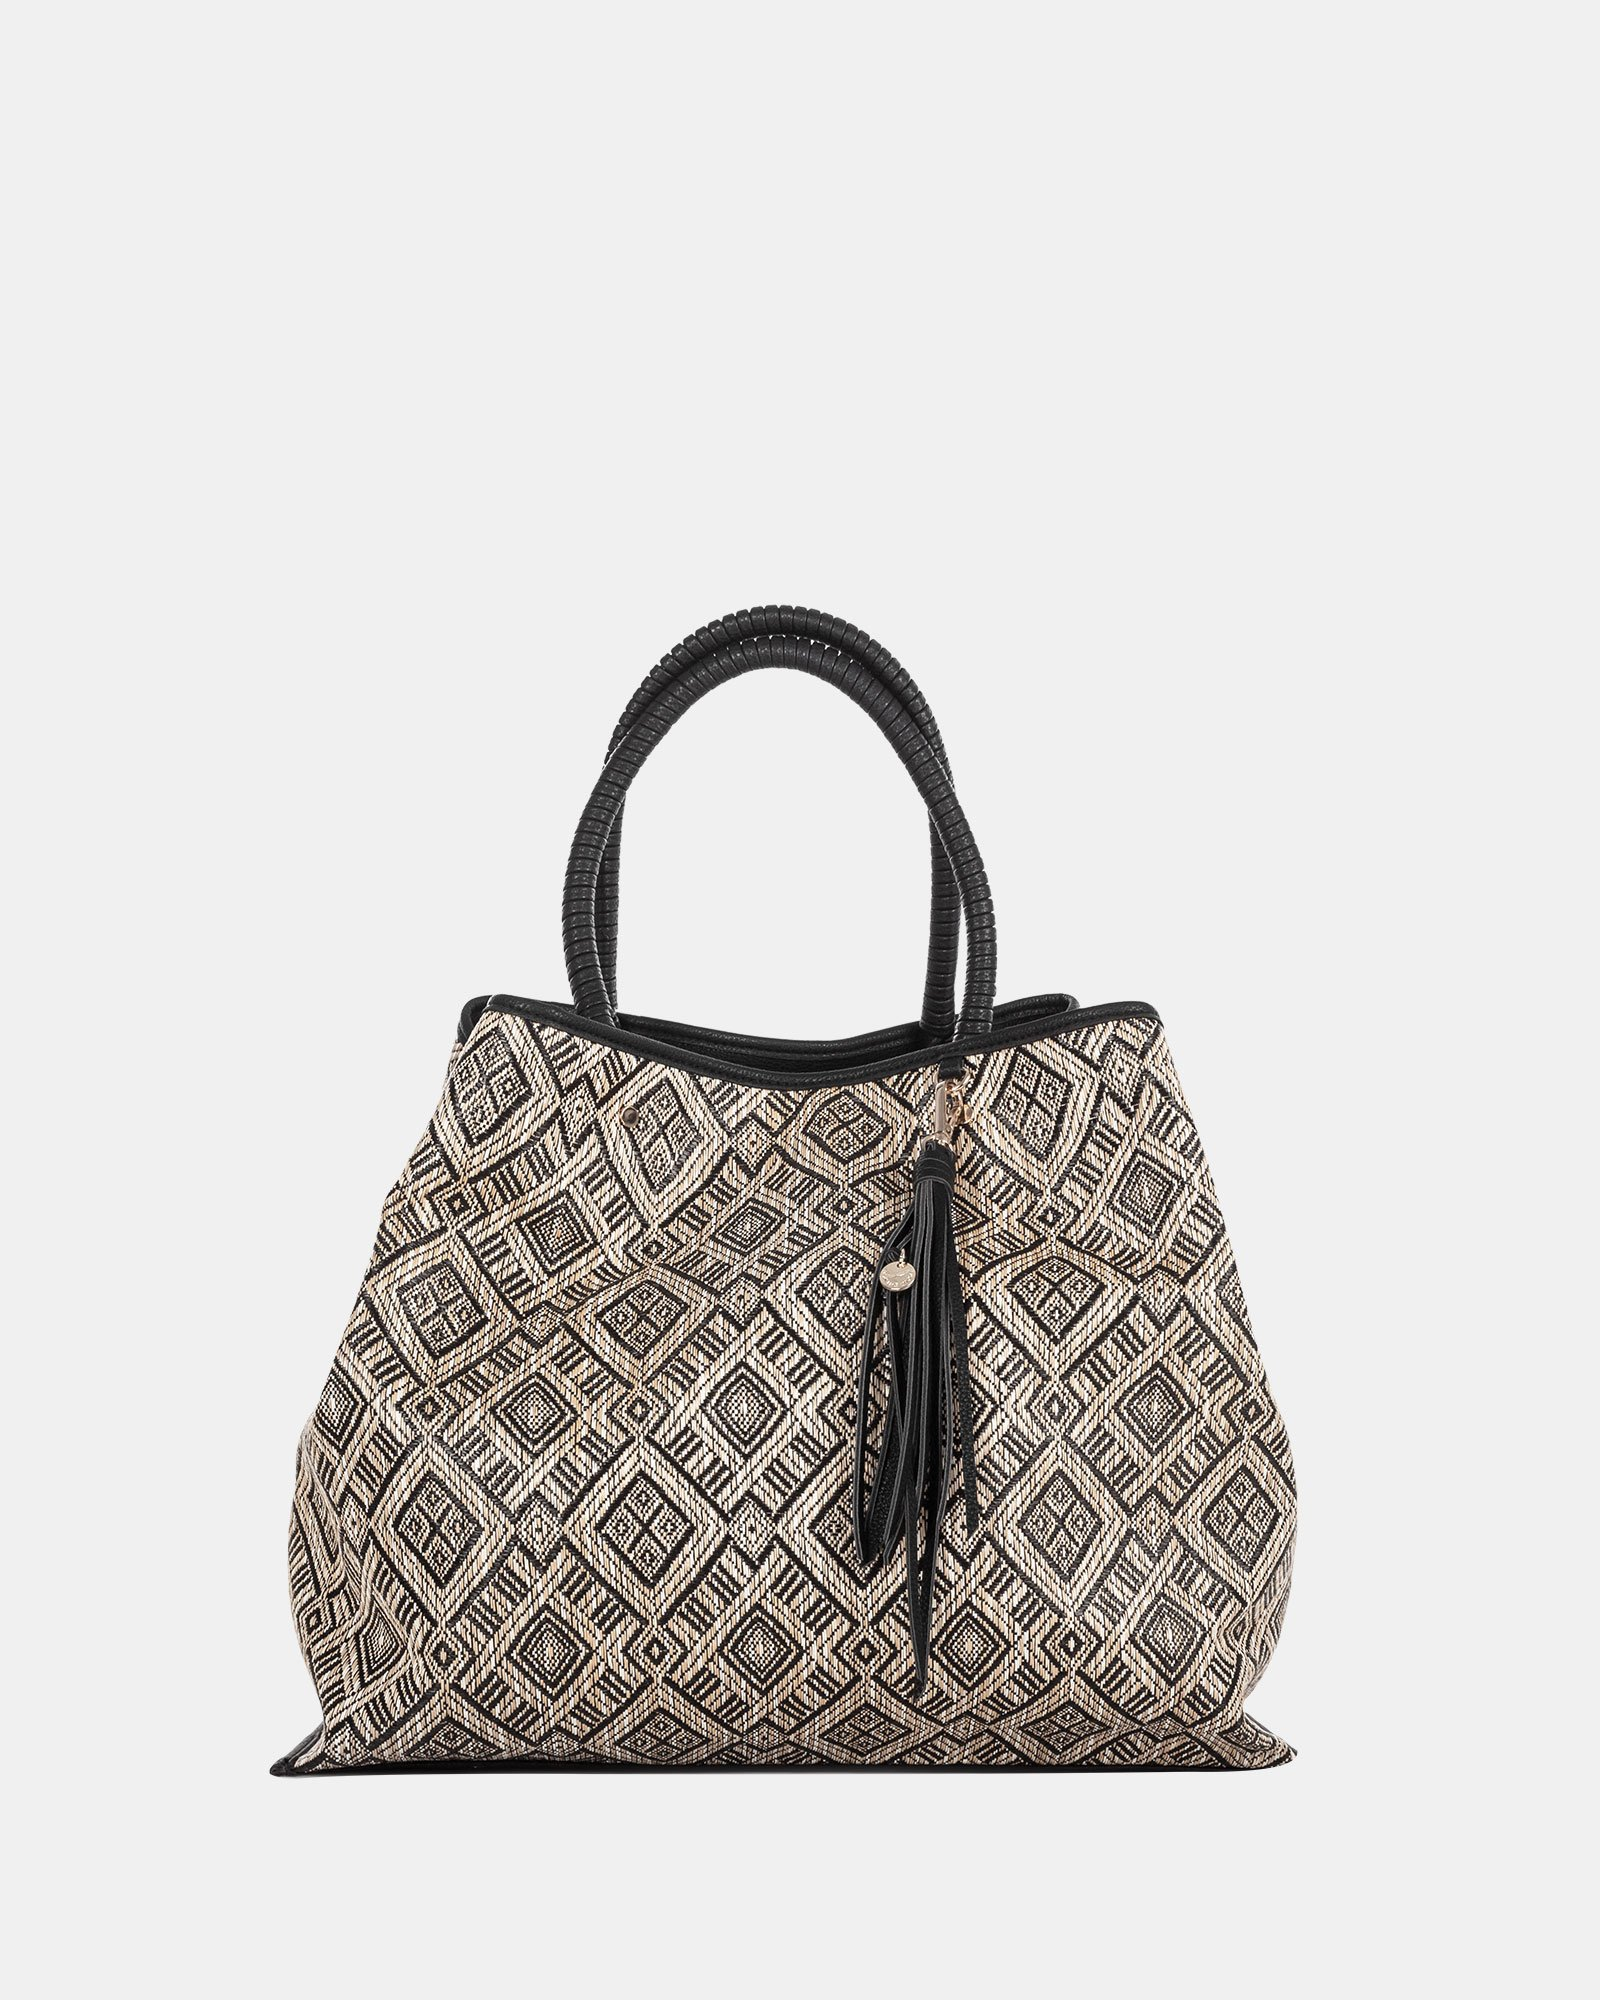 Andare - Tote bag in Patterned straw and leather-like  - Black - Céline Dion - Zoom